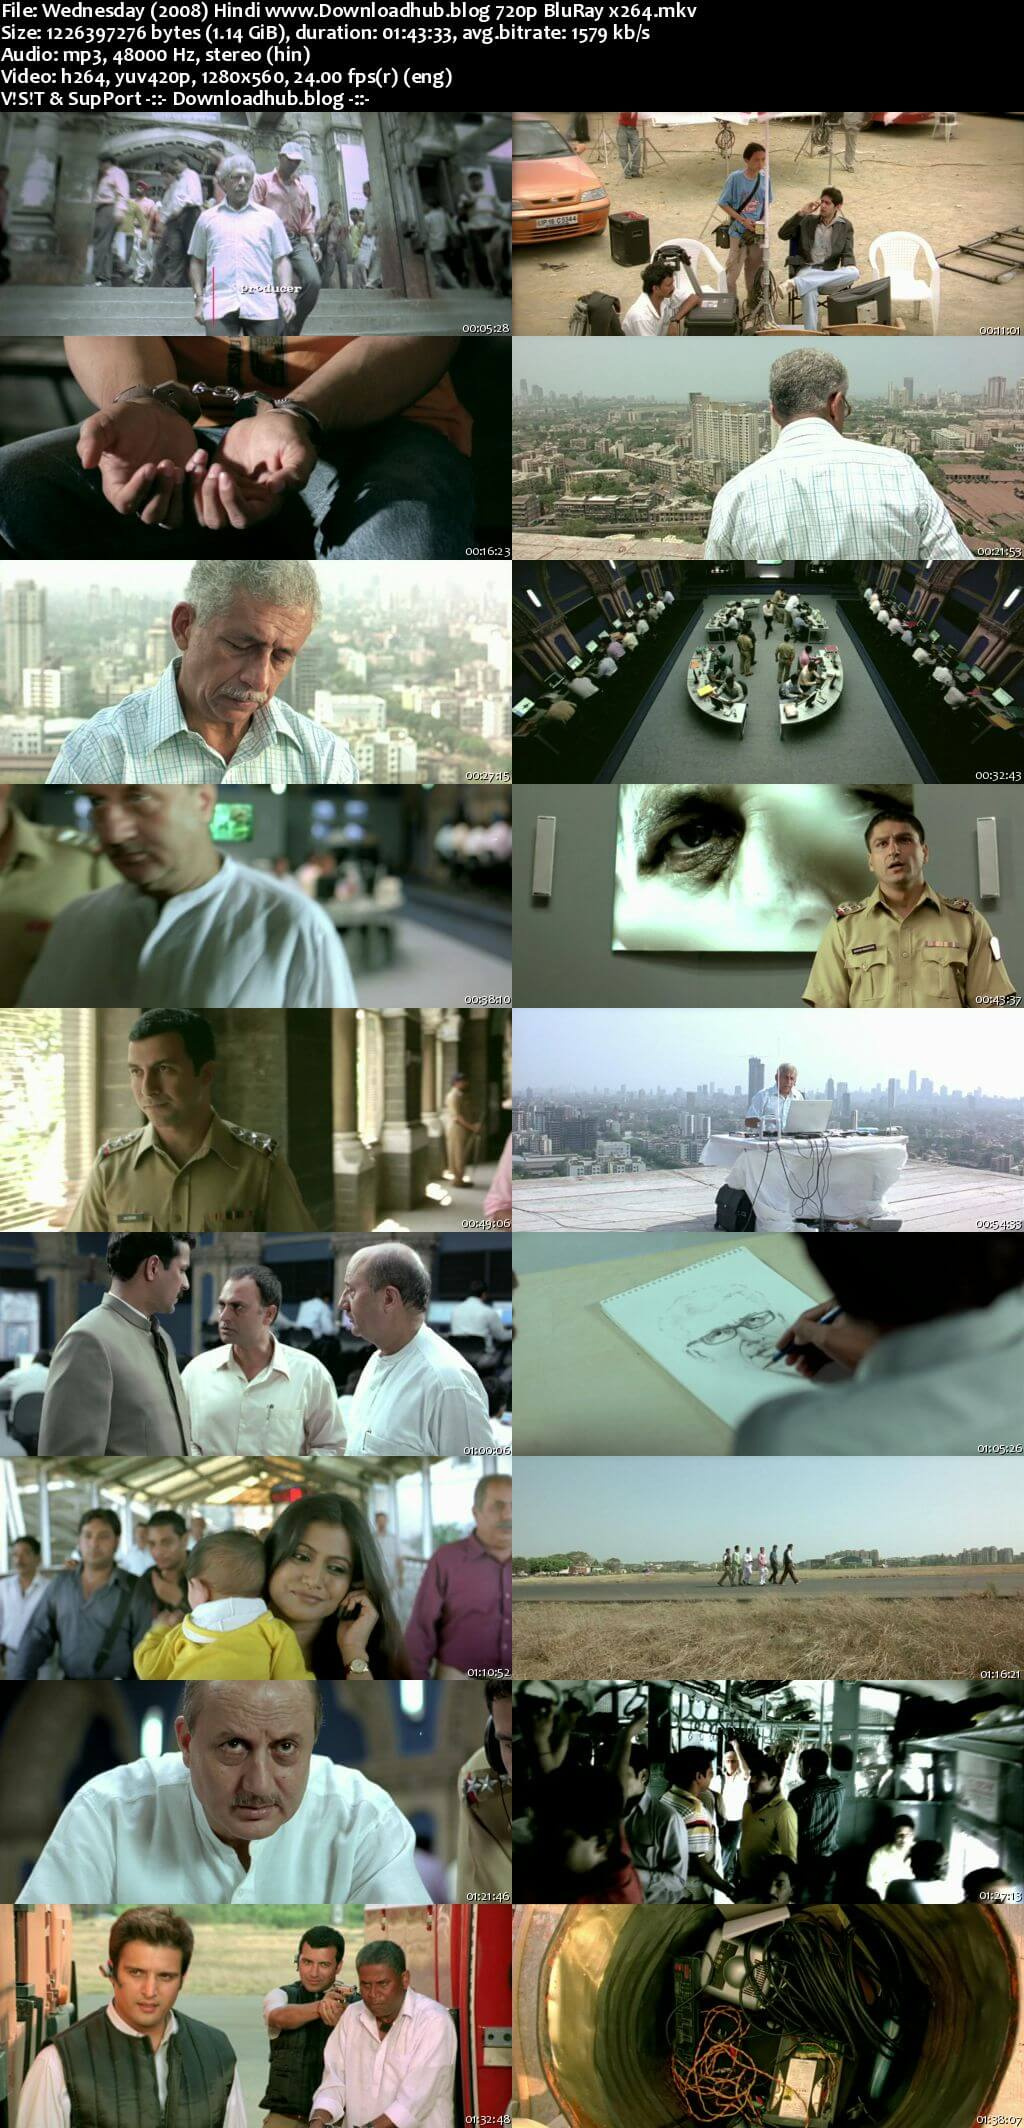 A Wednesday 2008 Hindi 720p BluRay x264